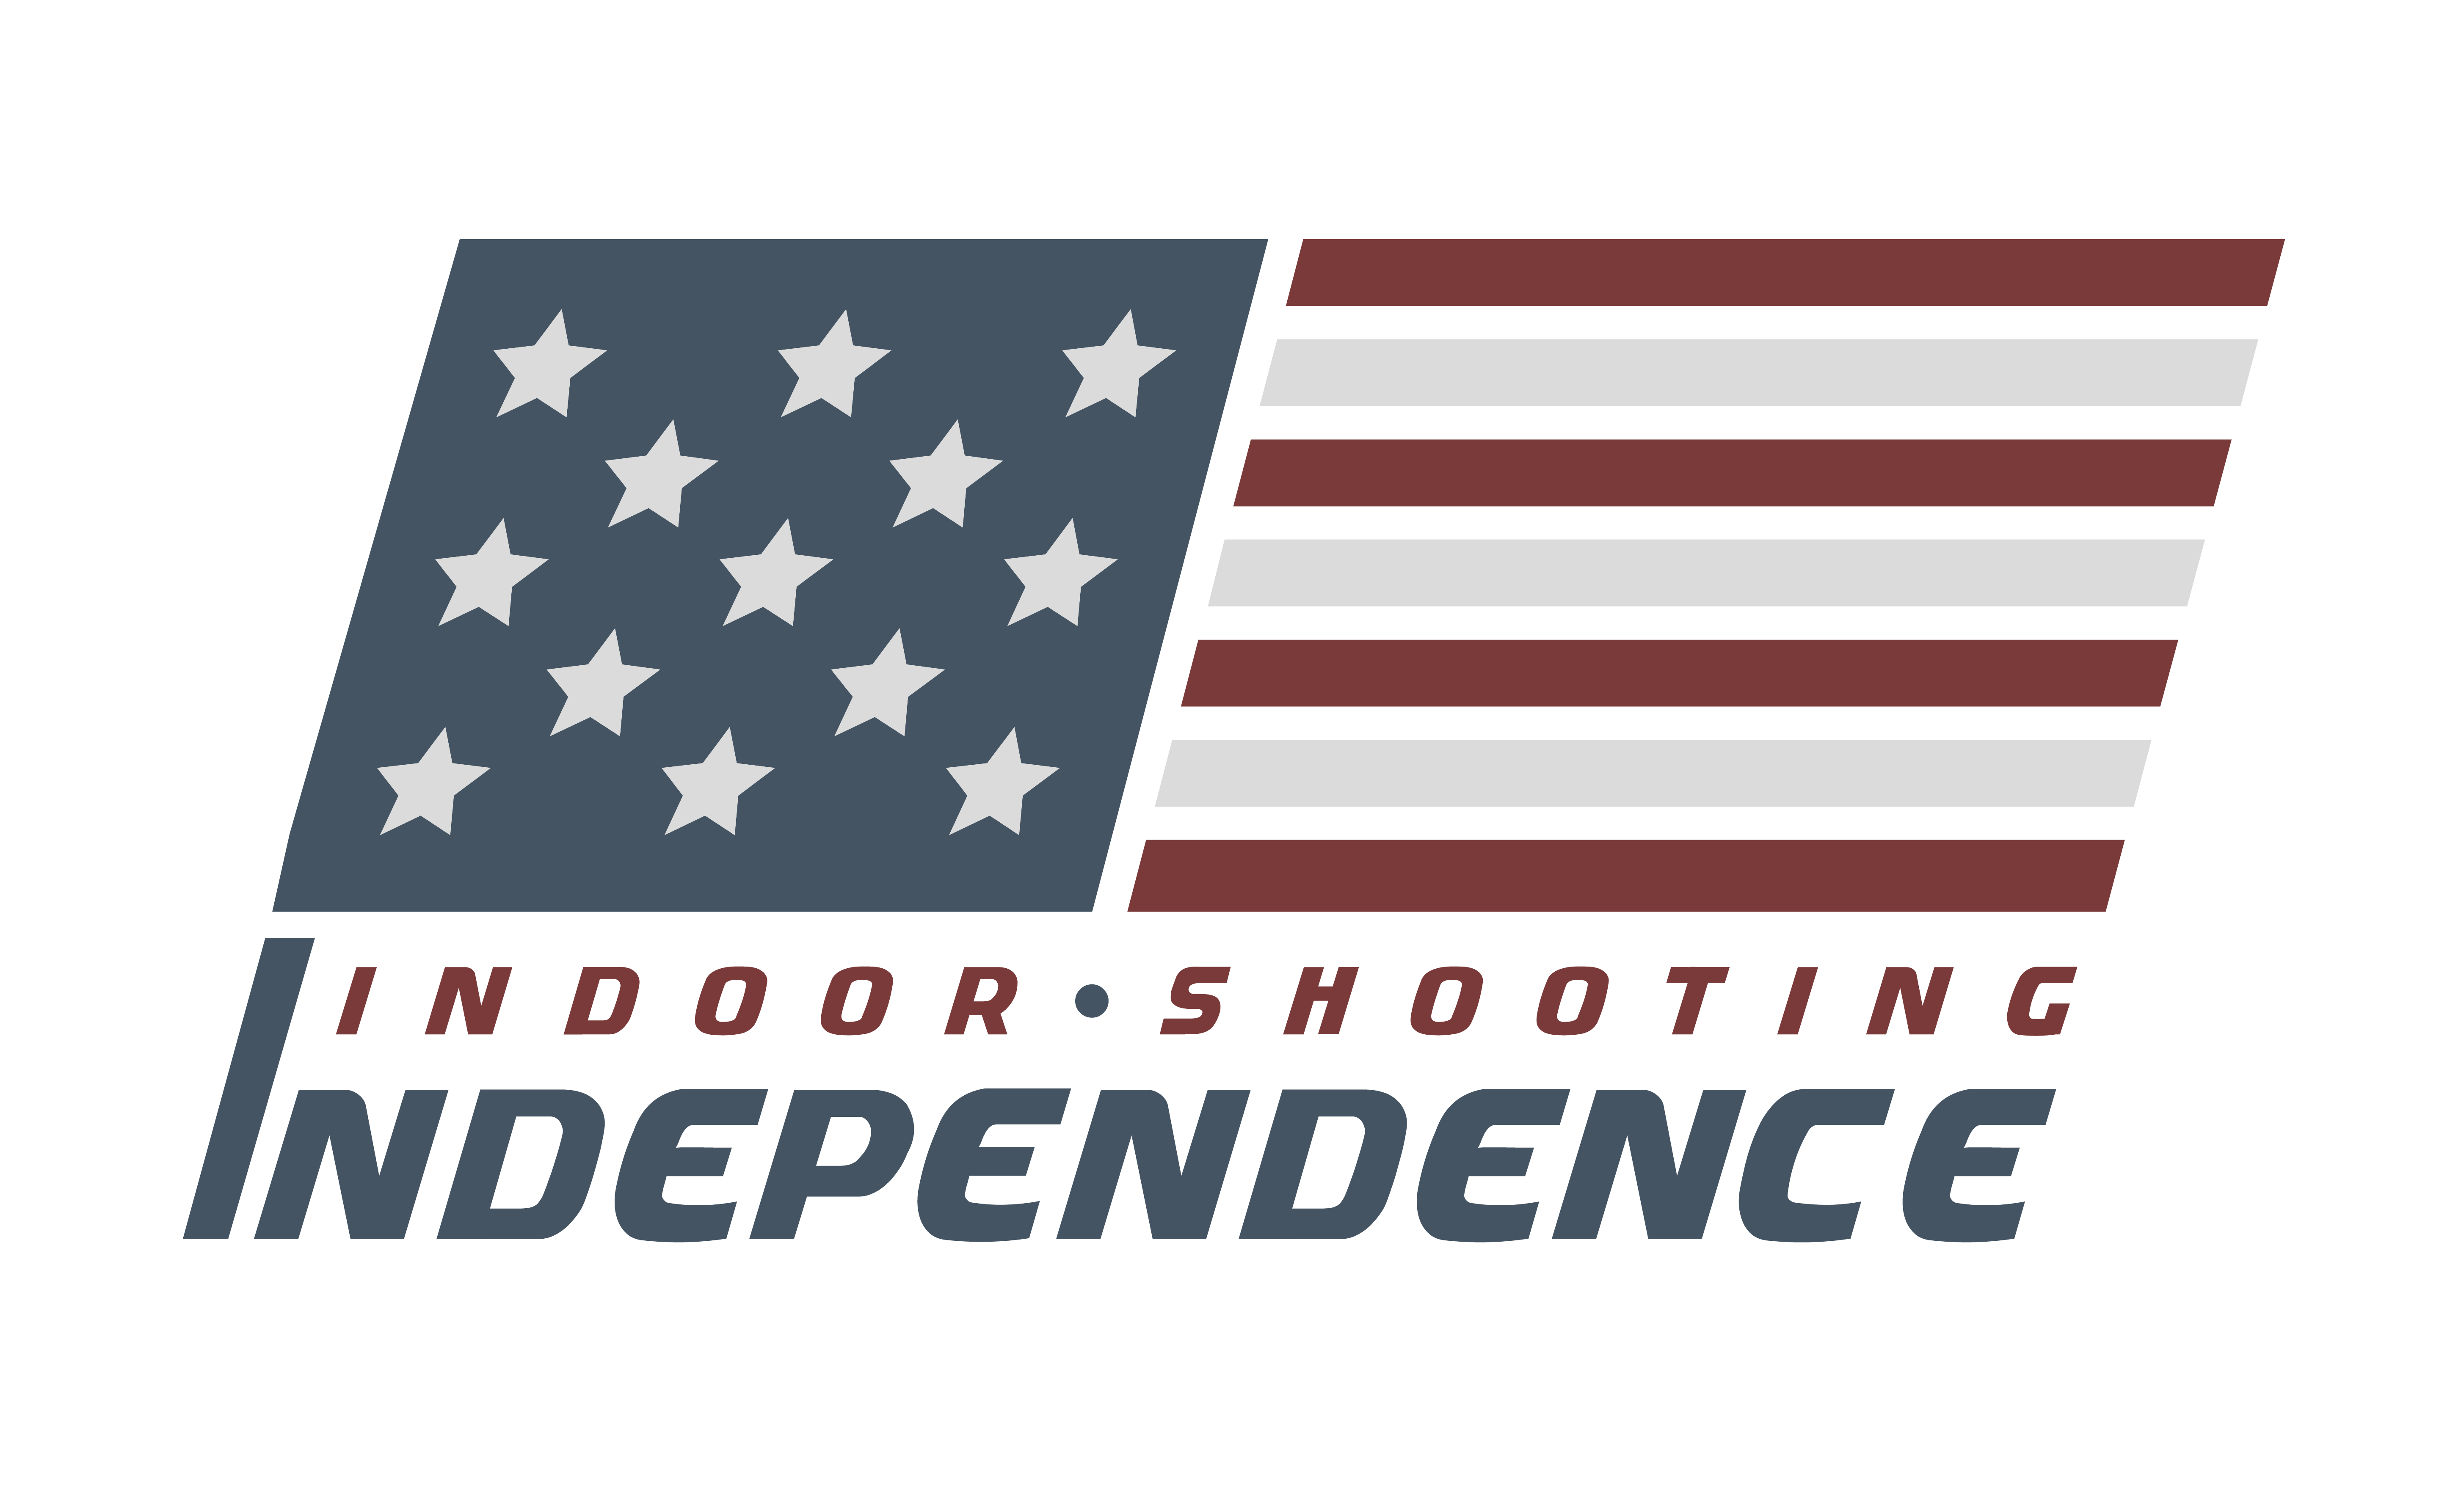 Independence Indoor Shooting